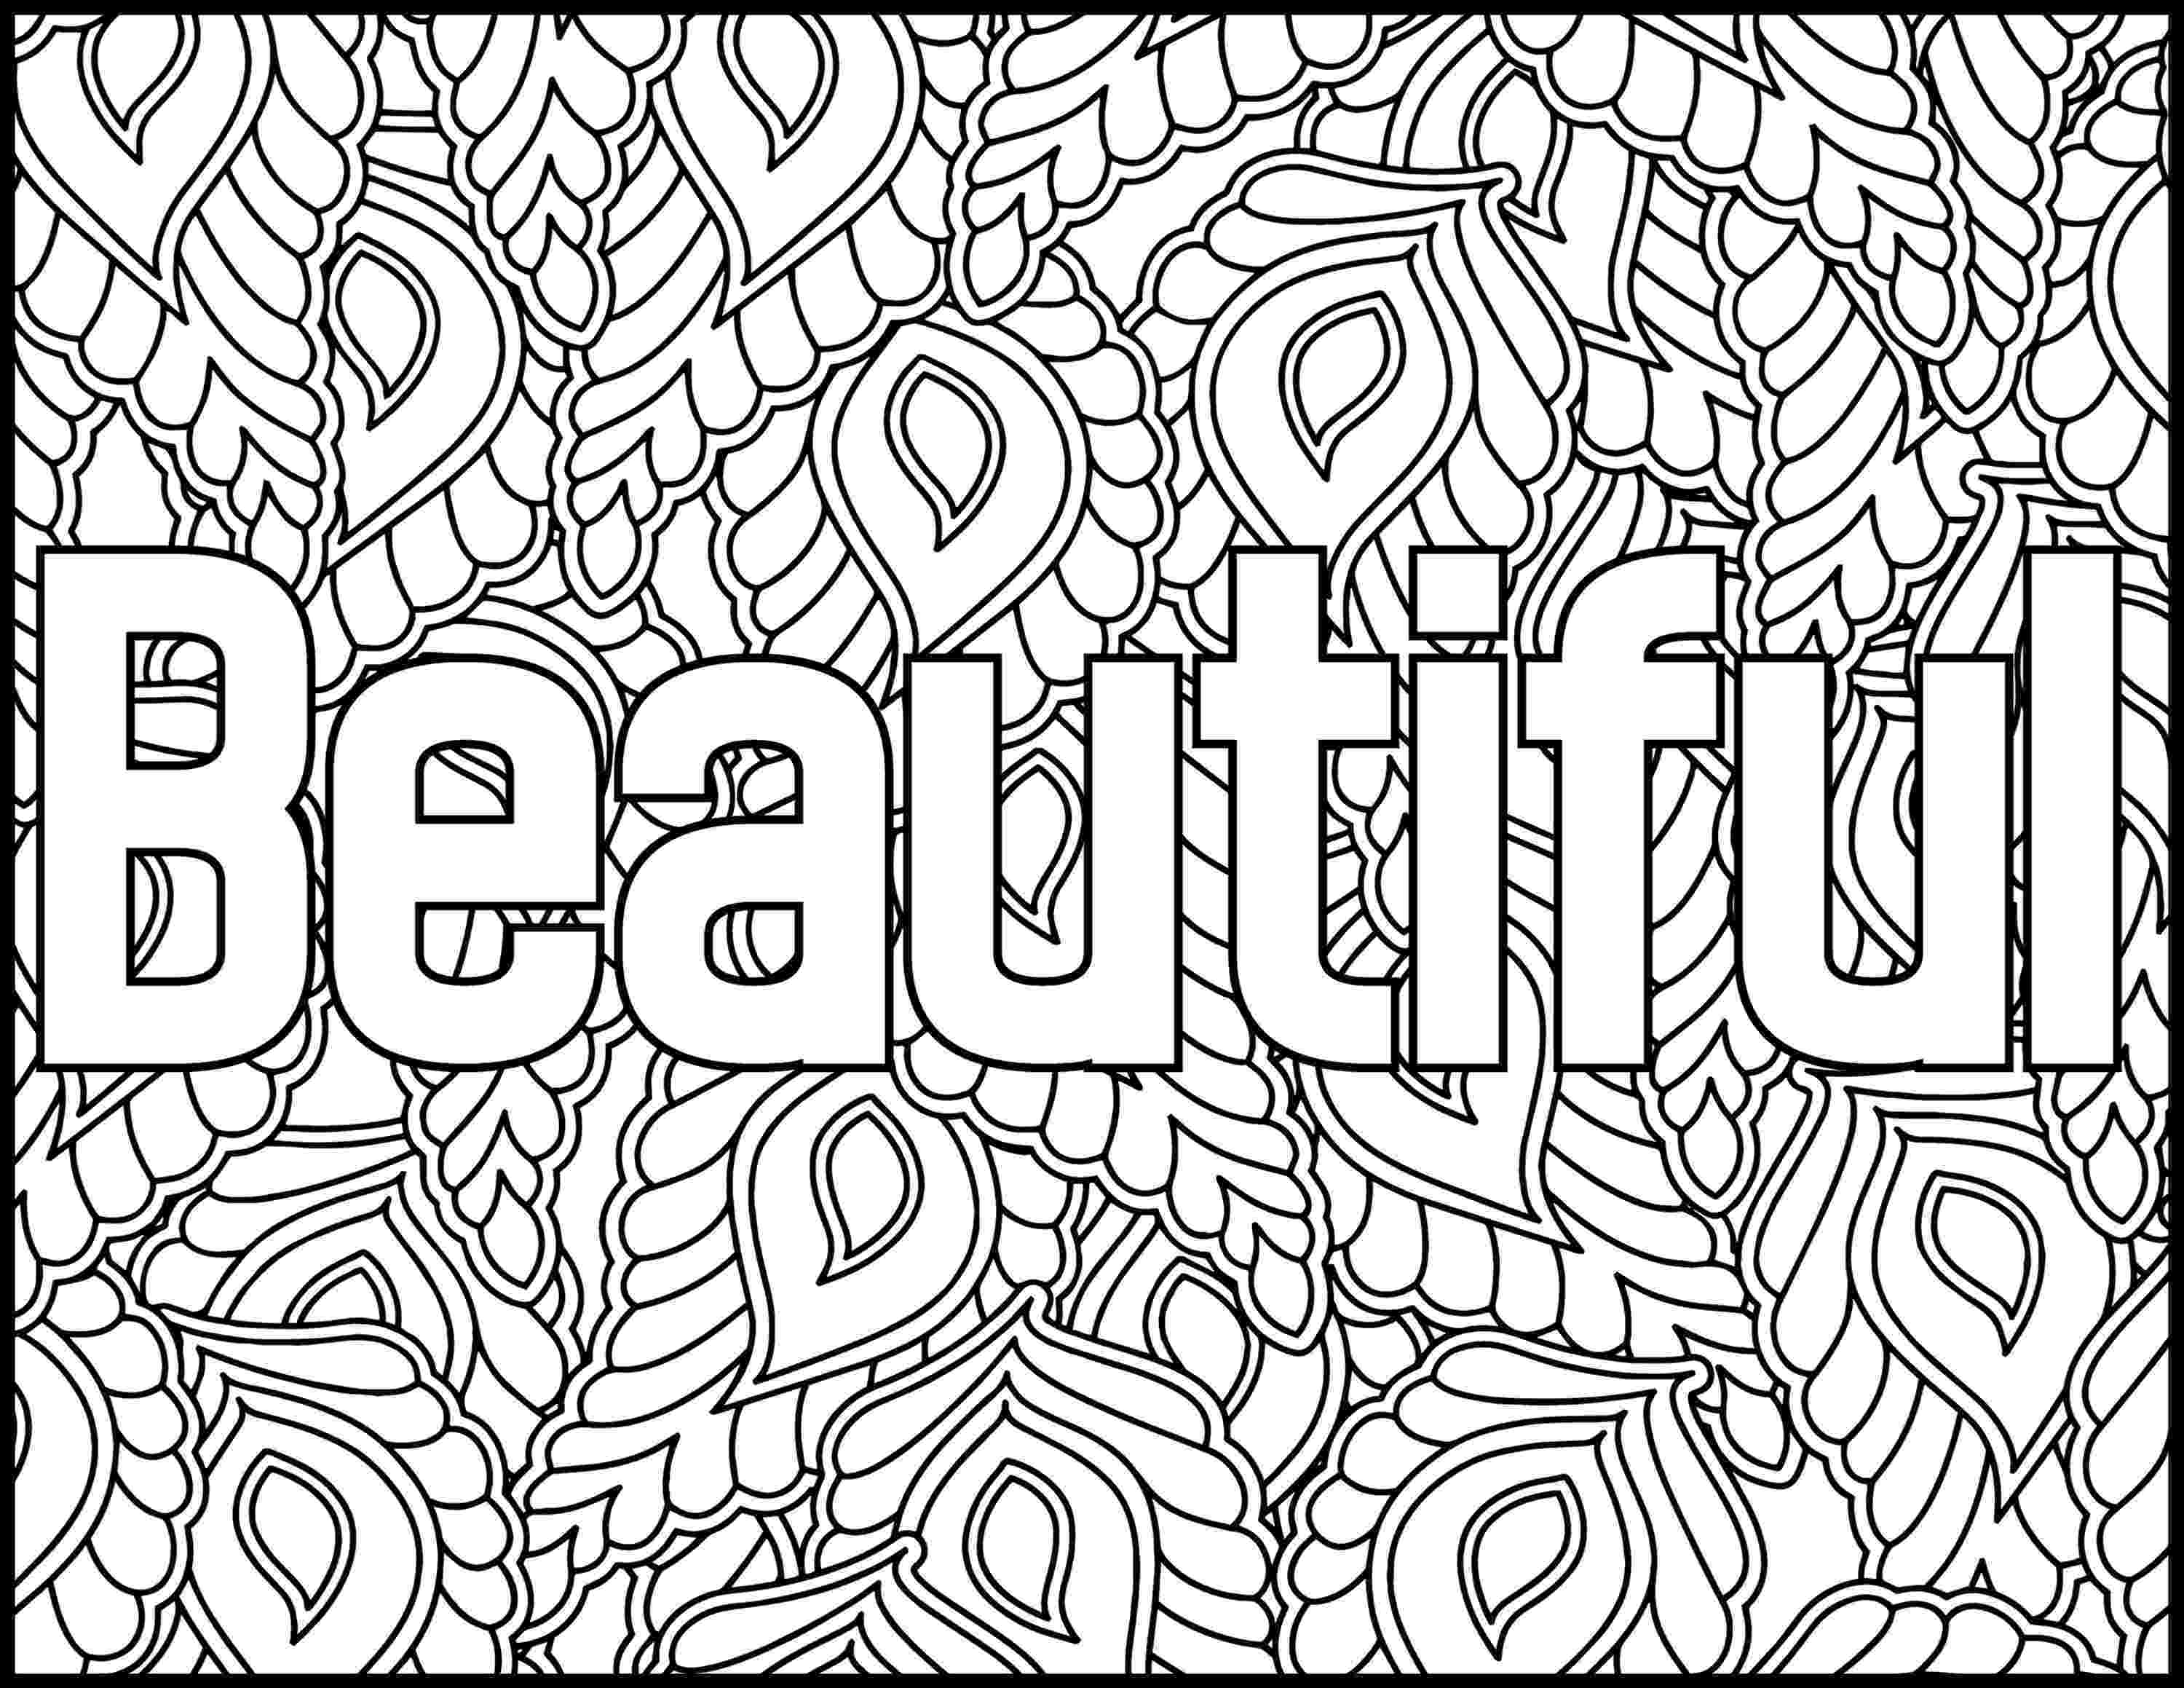 coloring book for adults beautiful day i love you doodle colouring page words love coloring day book adults coloring for beautiful